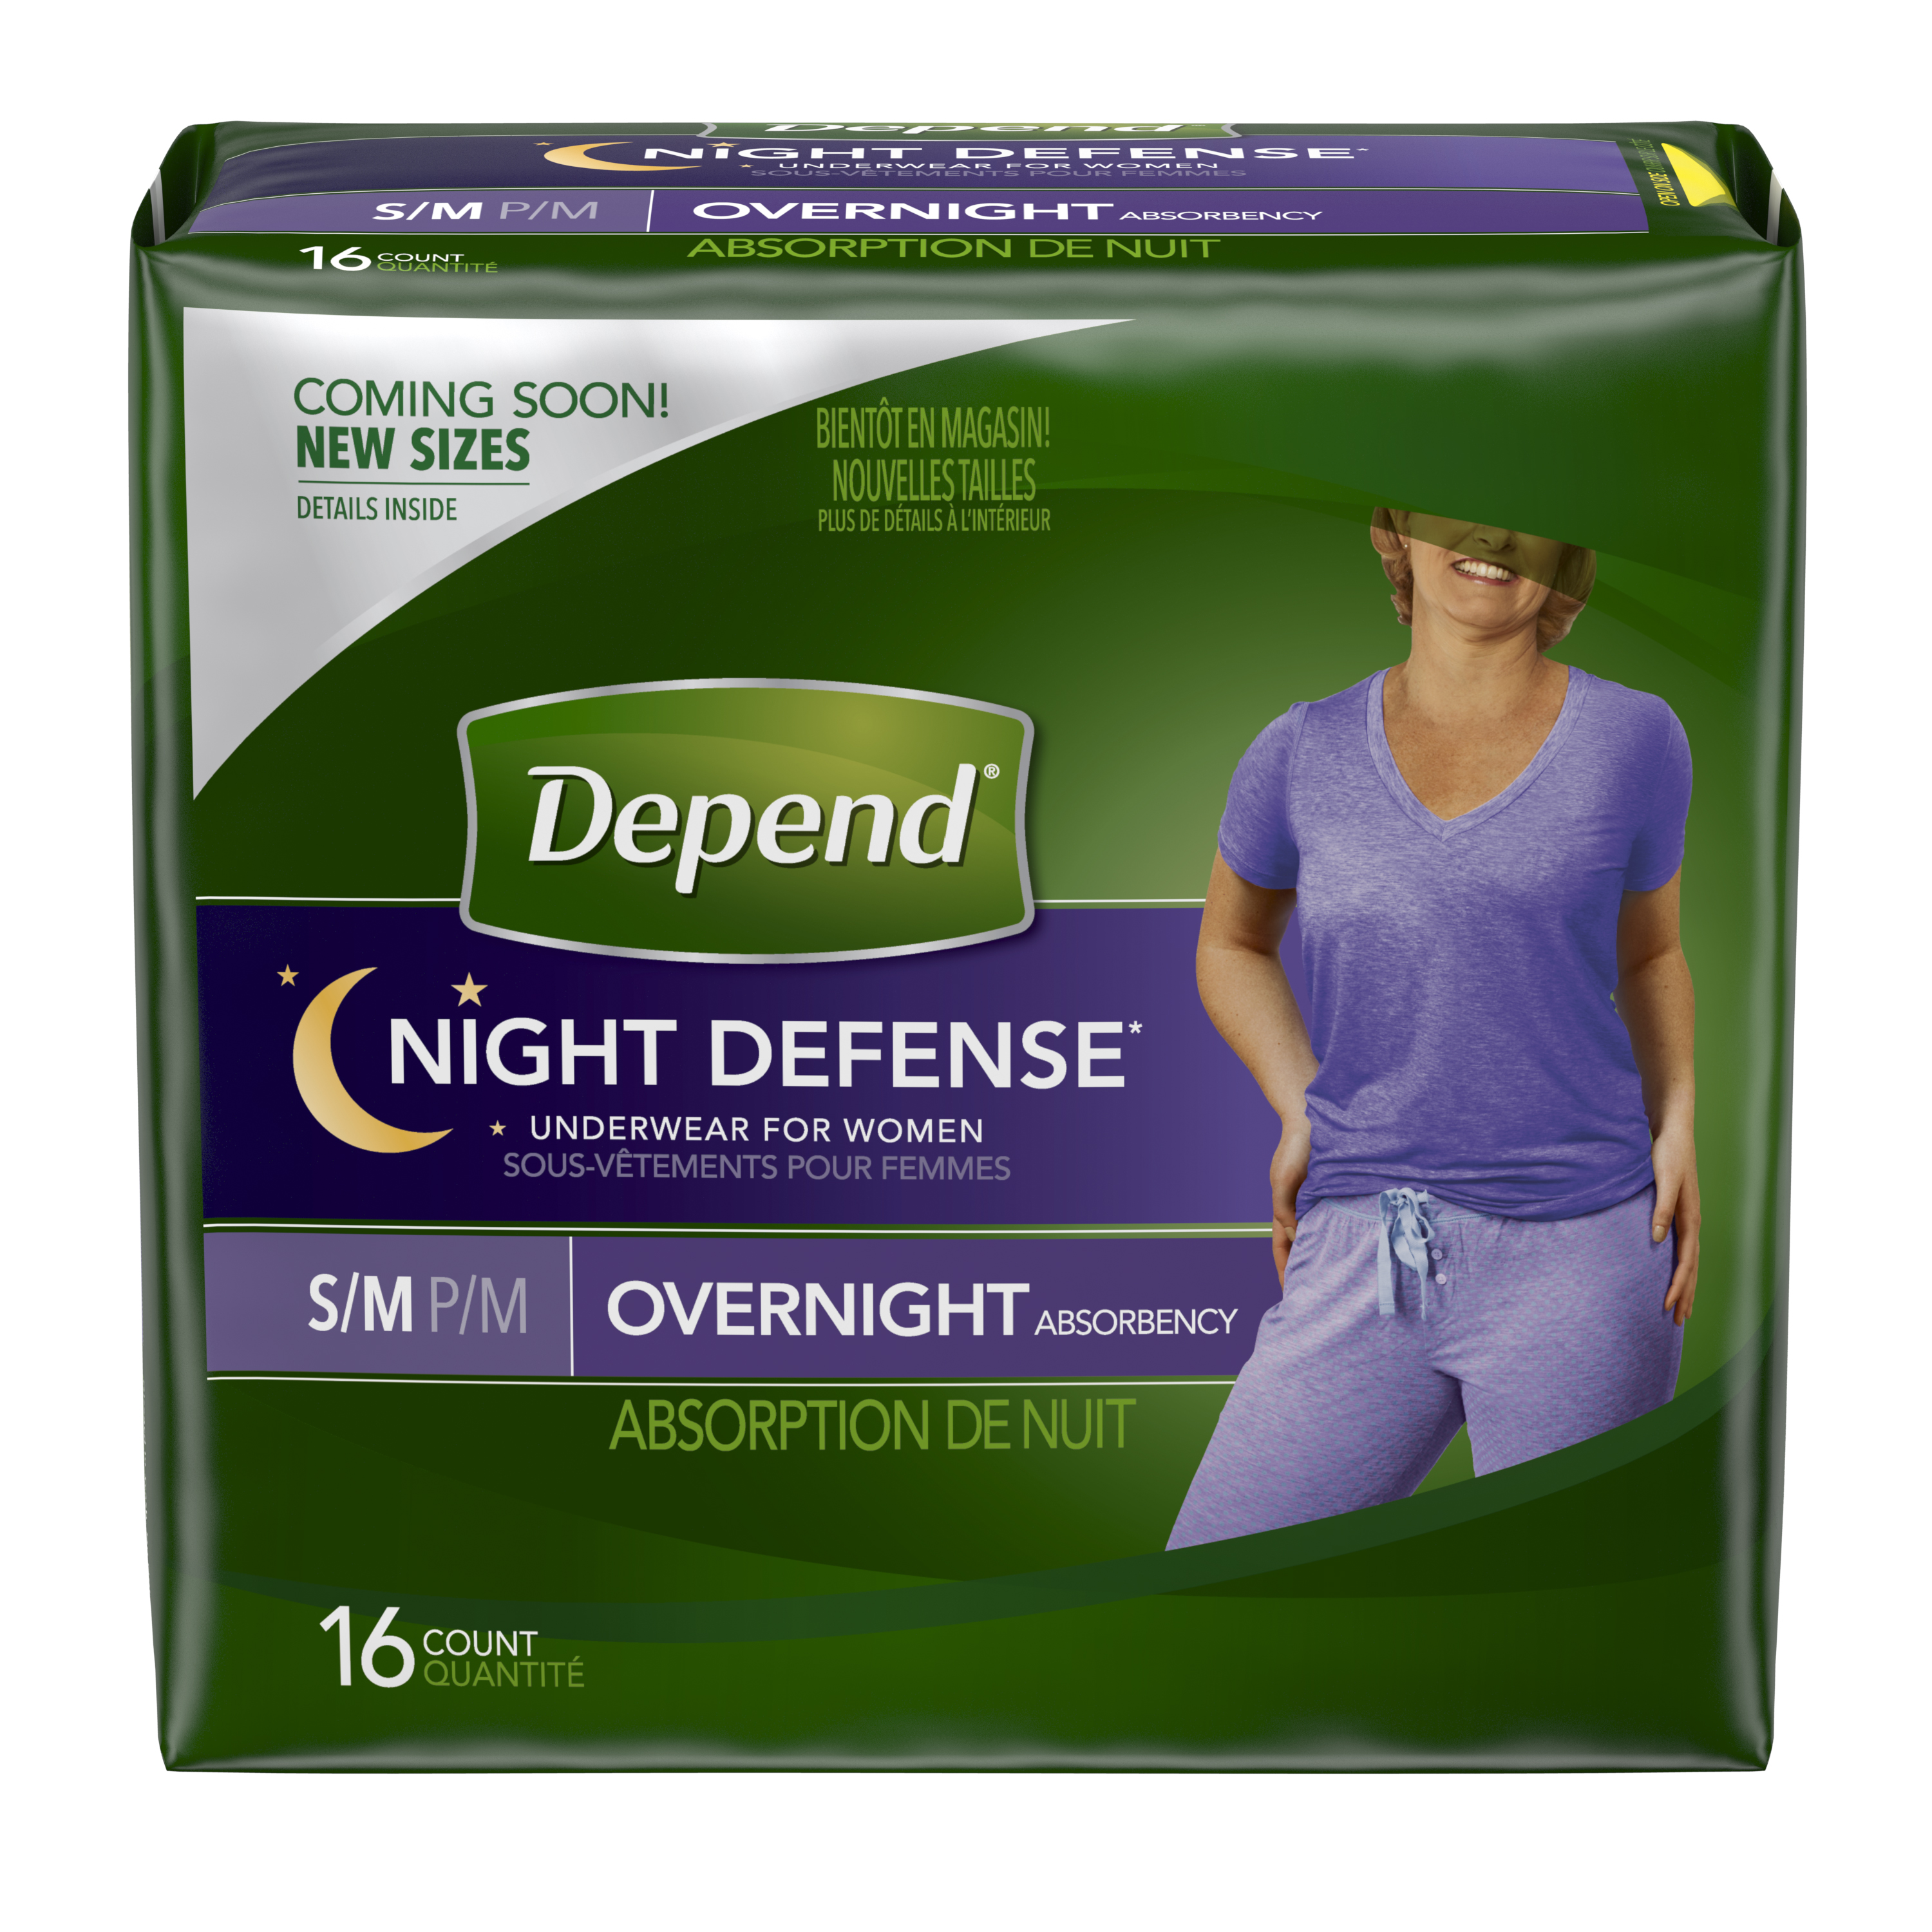 Depend Night Defense Incontinence Overnight Underwear for Women, S/M, 16 Count